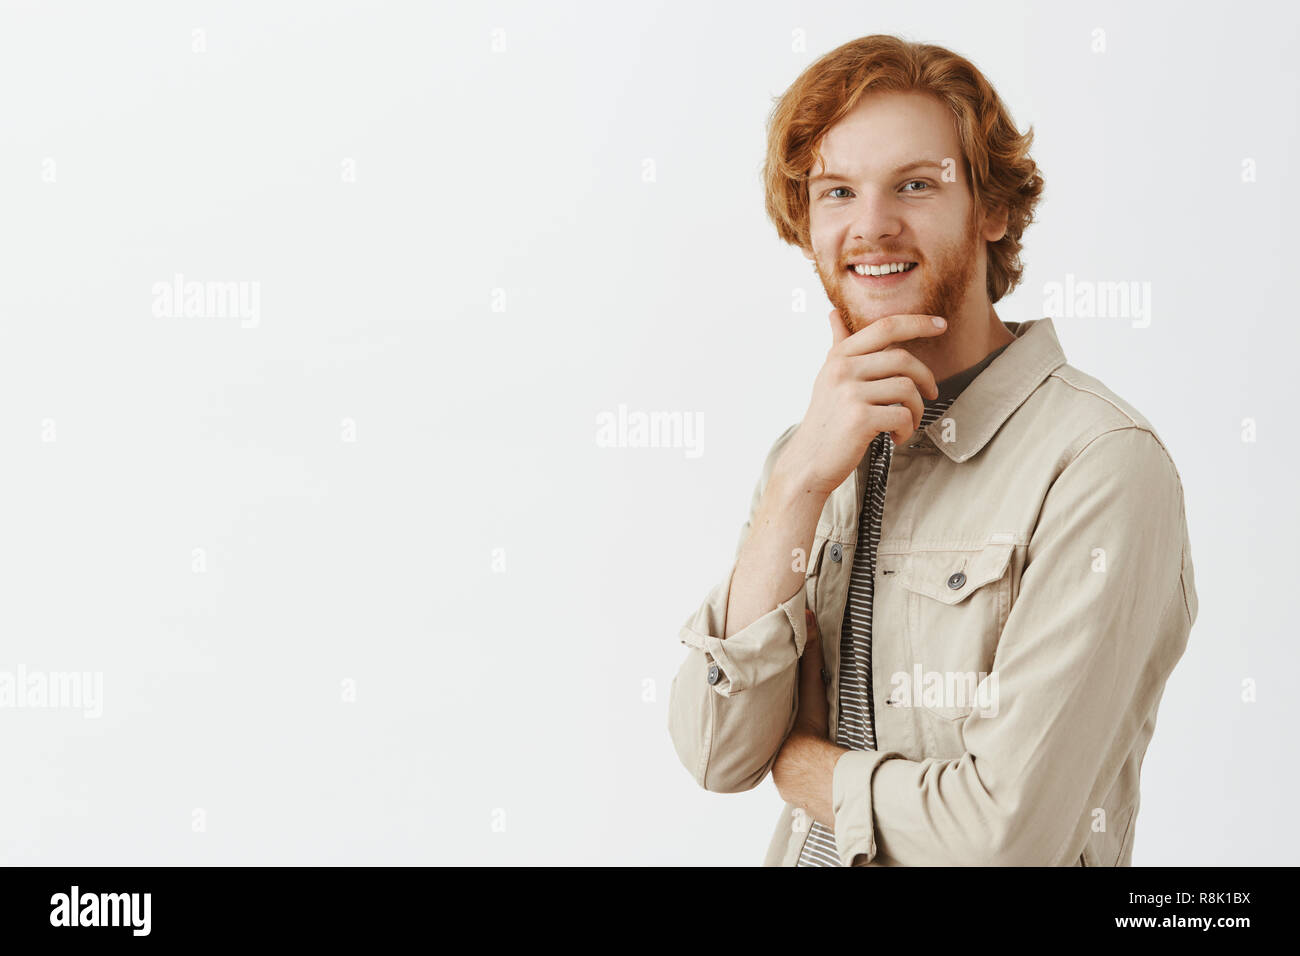 Portrait of intrigued and curious redhead happy guy receiving intersting offer consedering to except it rubbing beard and smiling broadly at camera thinking, making decision or choice - Stock Image